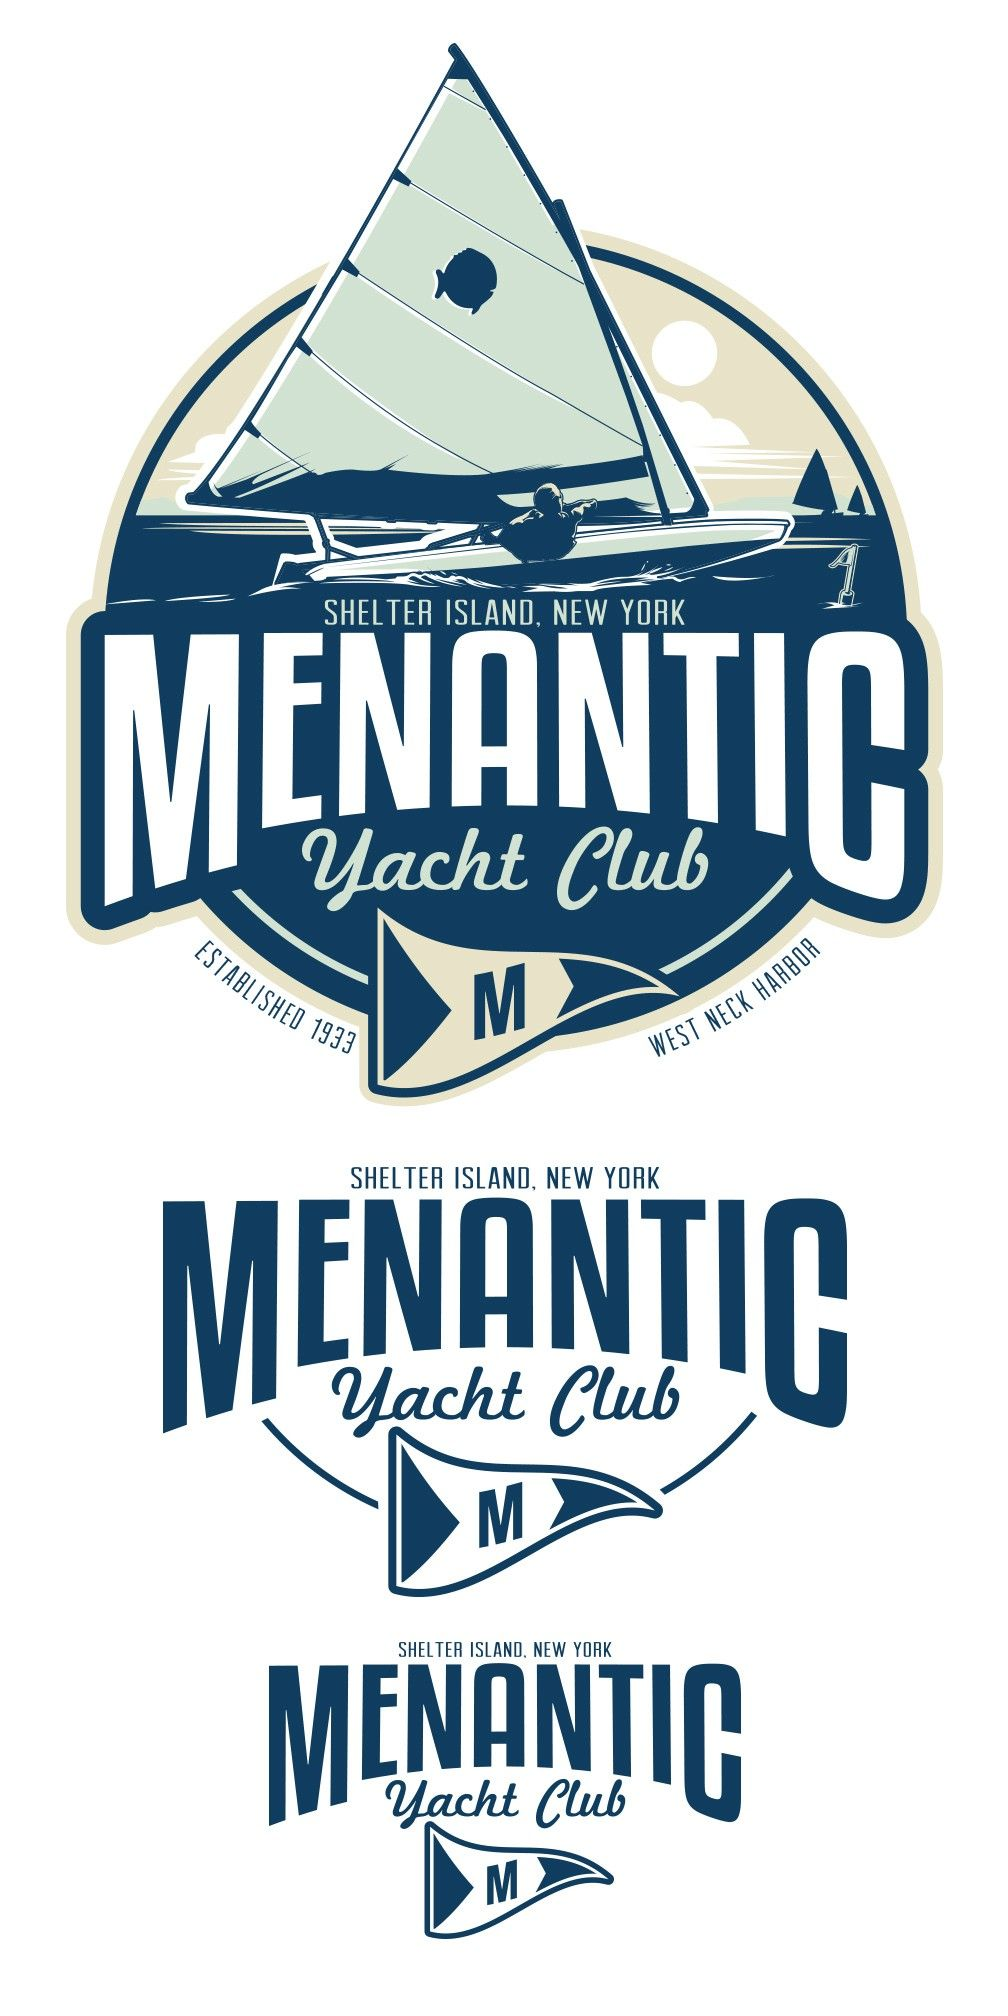 Menantic 99designs (With images) Logo design, Mountain